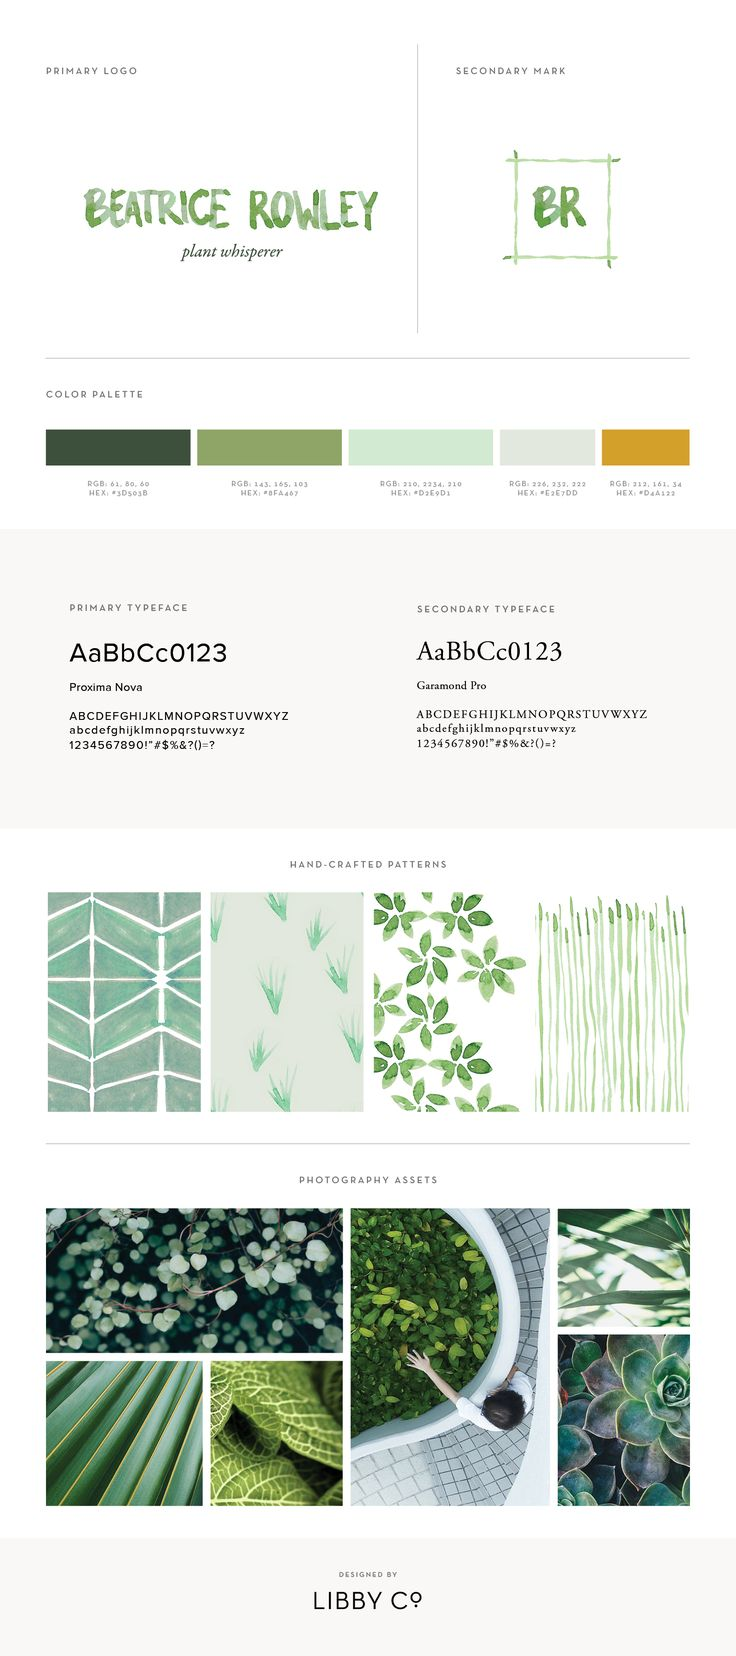 Click to [DOWNLOAD] your Free Brand Style Guide Template >>